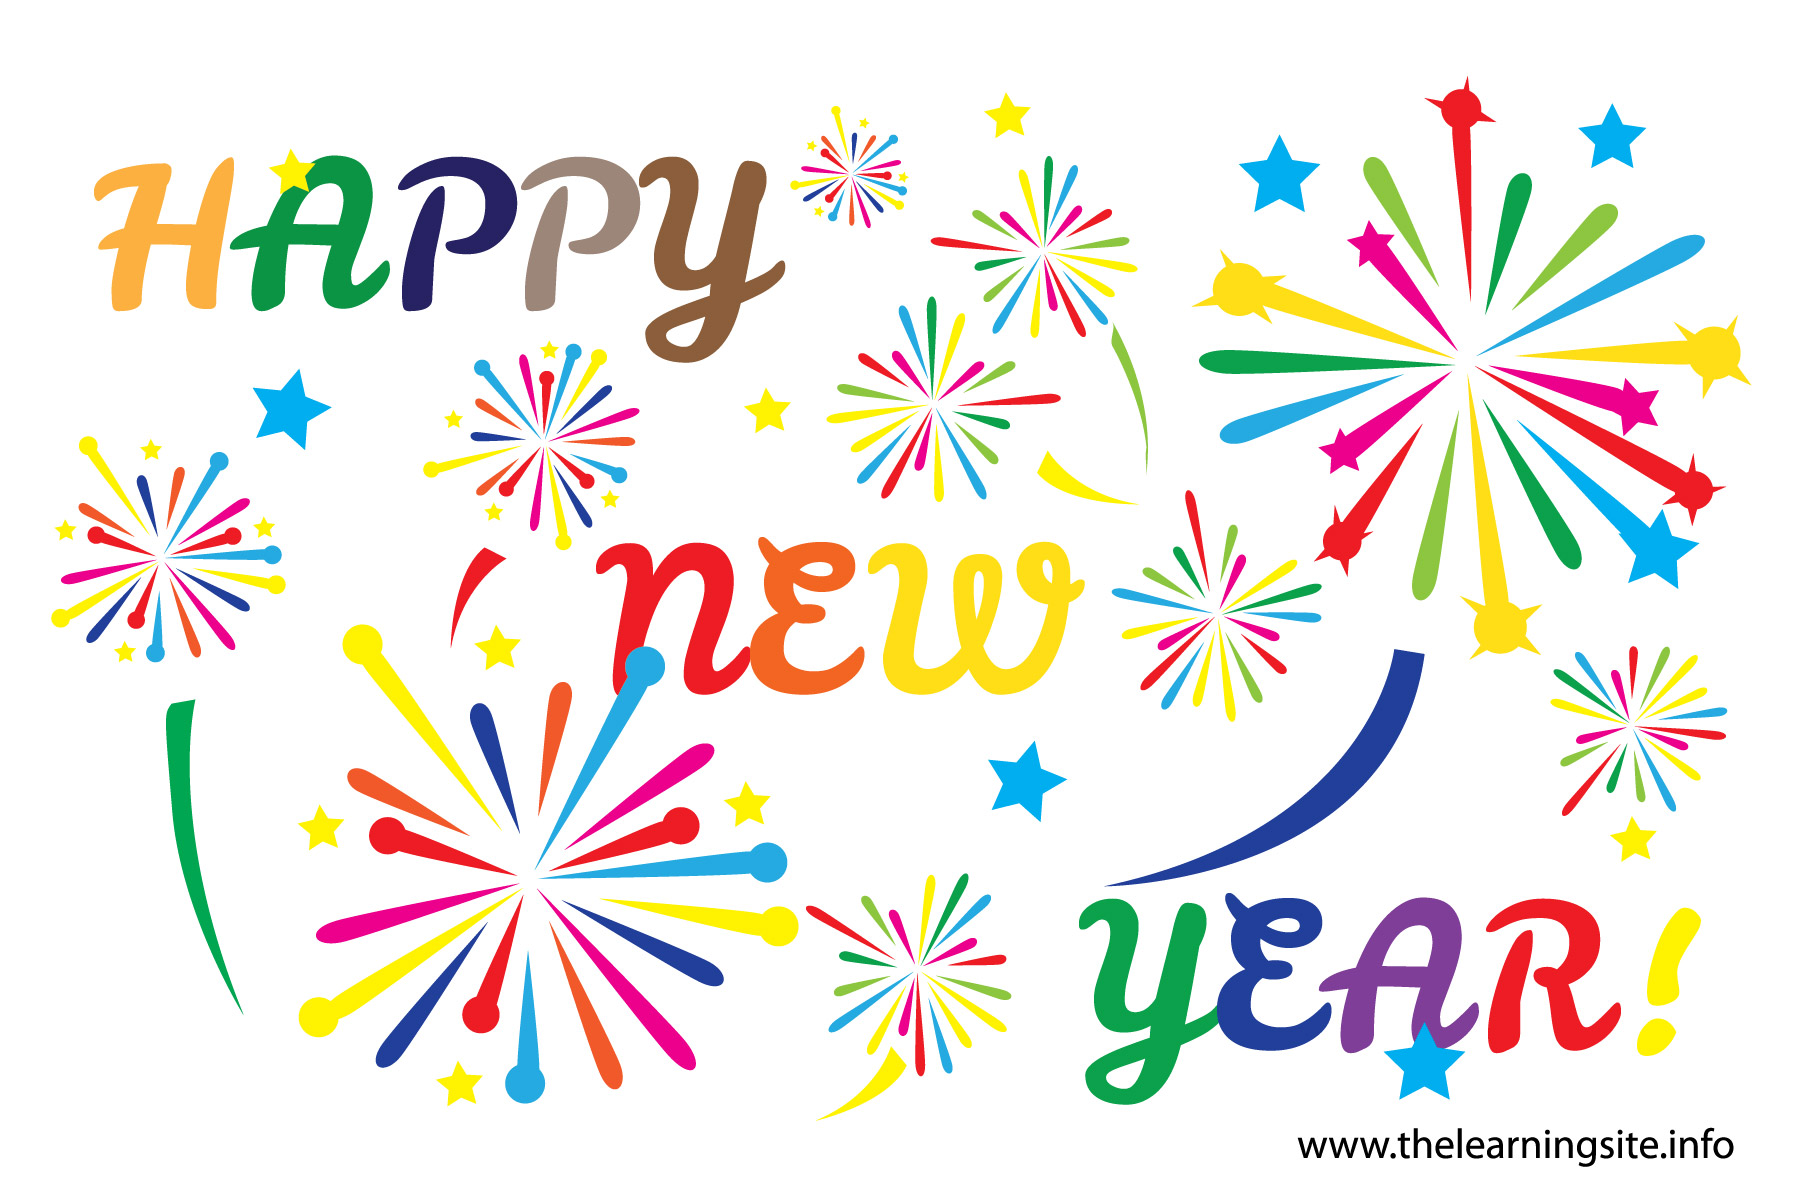 happy new year clipart free for 2015 free clipart new year's eve free clipart new year's 2019